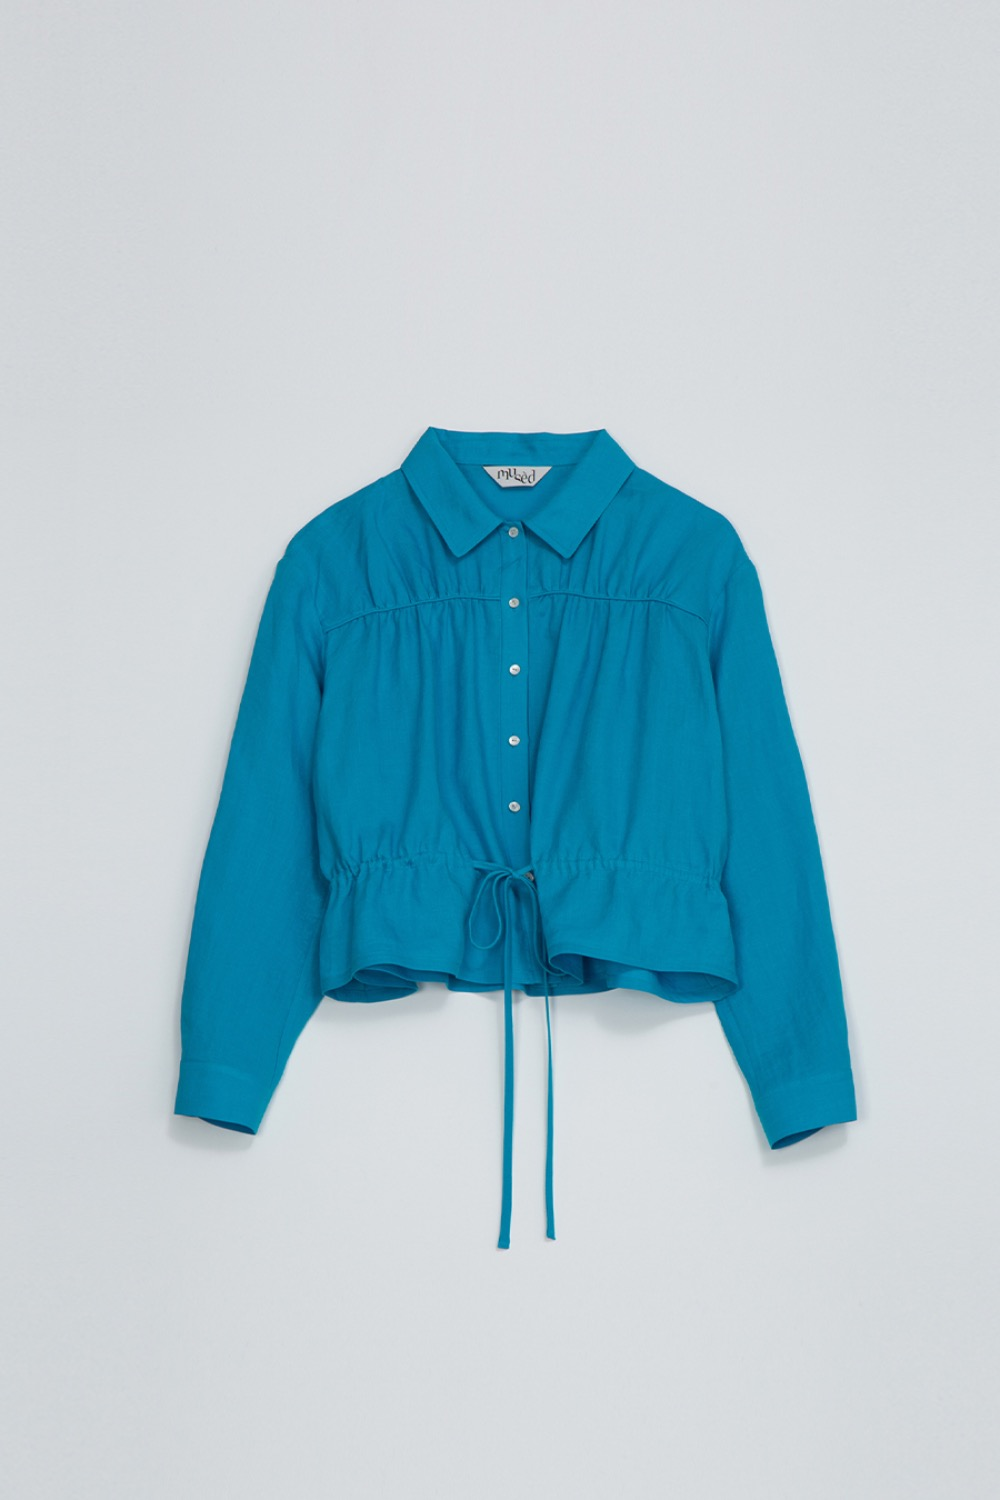 BIEN SHIRT JACKET - AQUA BLUE LINEN